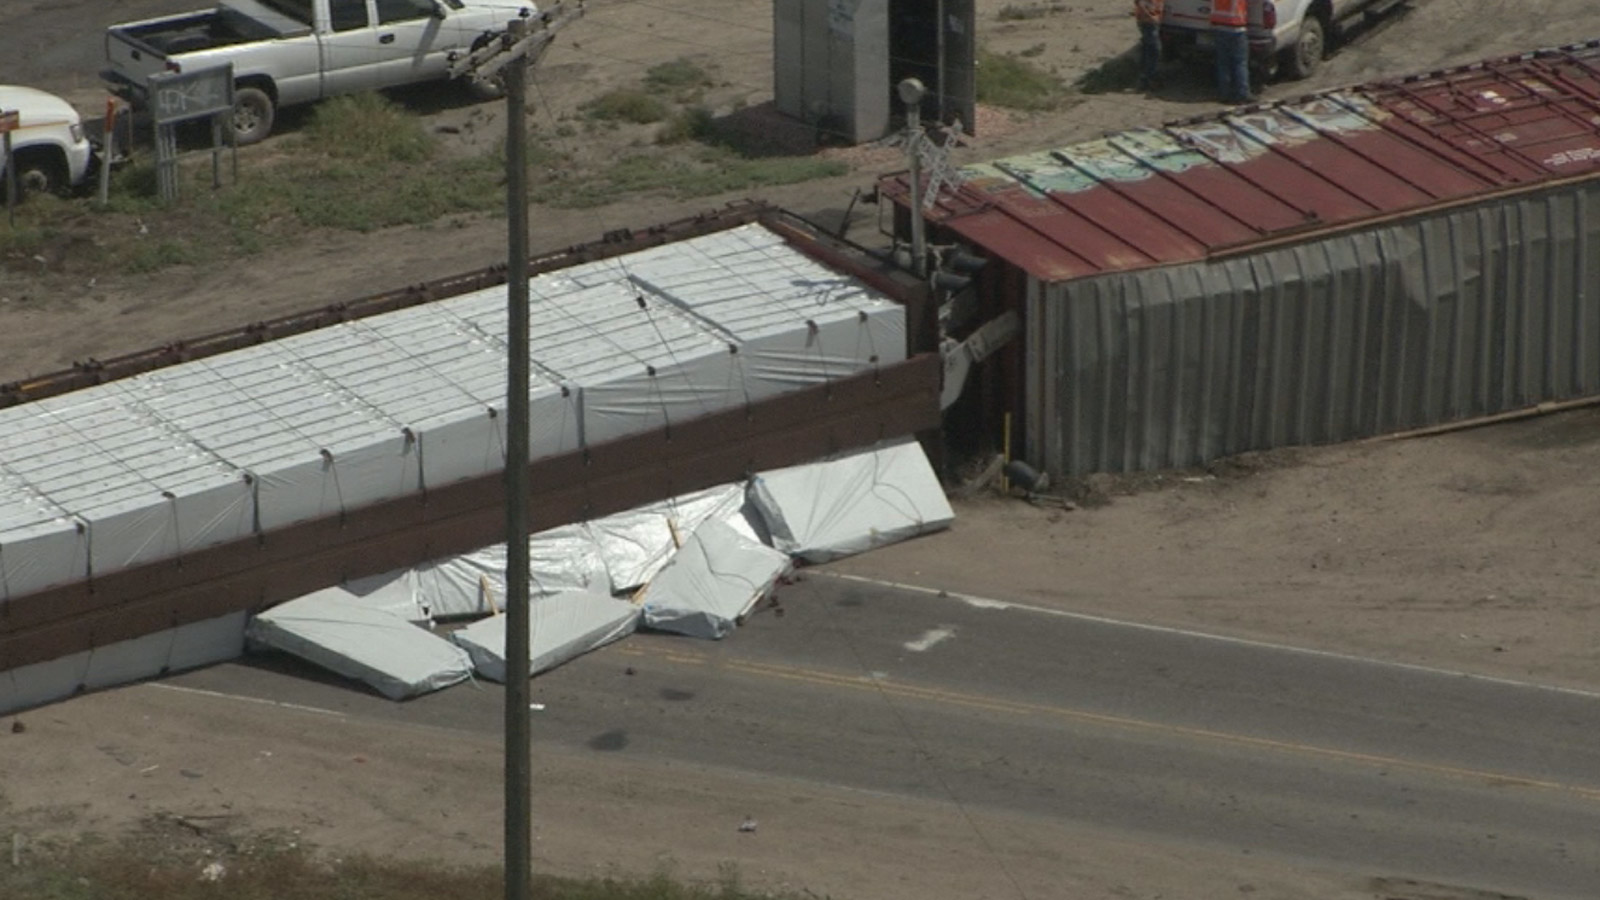 Copter4 flew over a train derailment in Commerce City on Tuesday (credit: CBS)